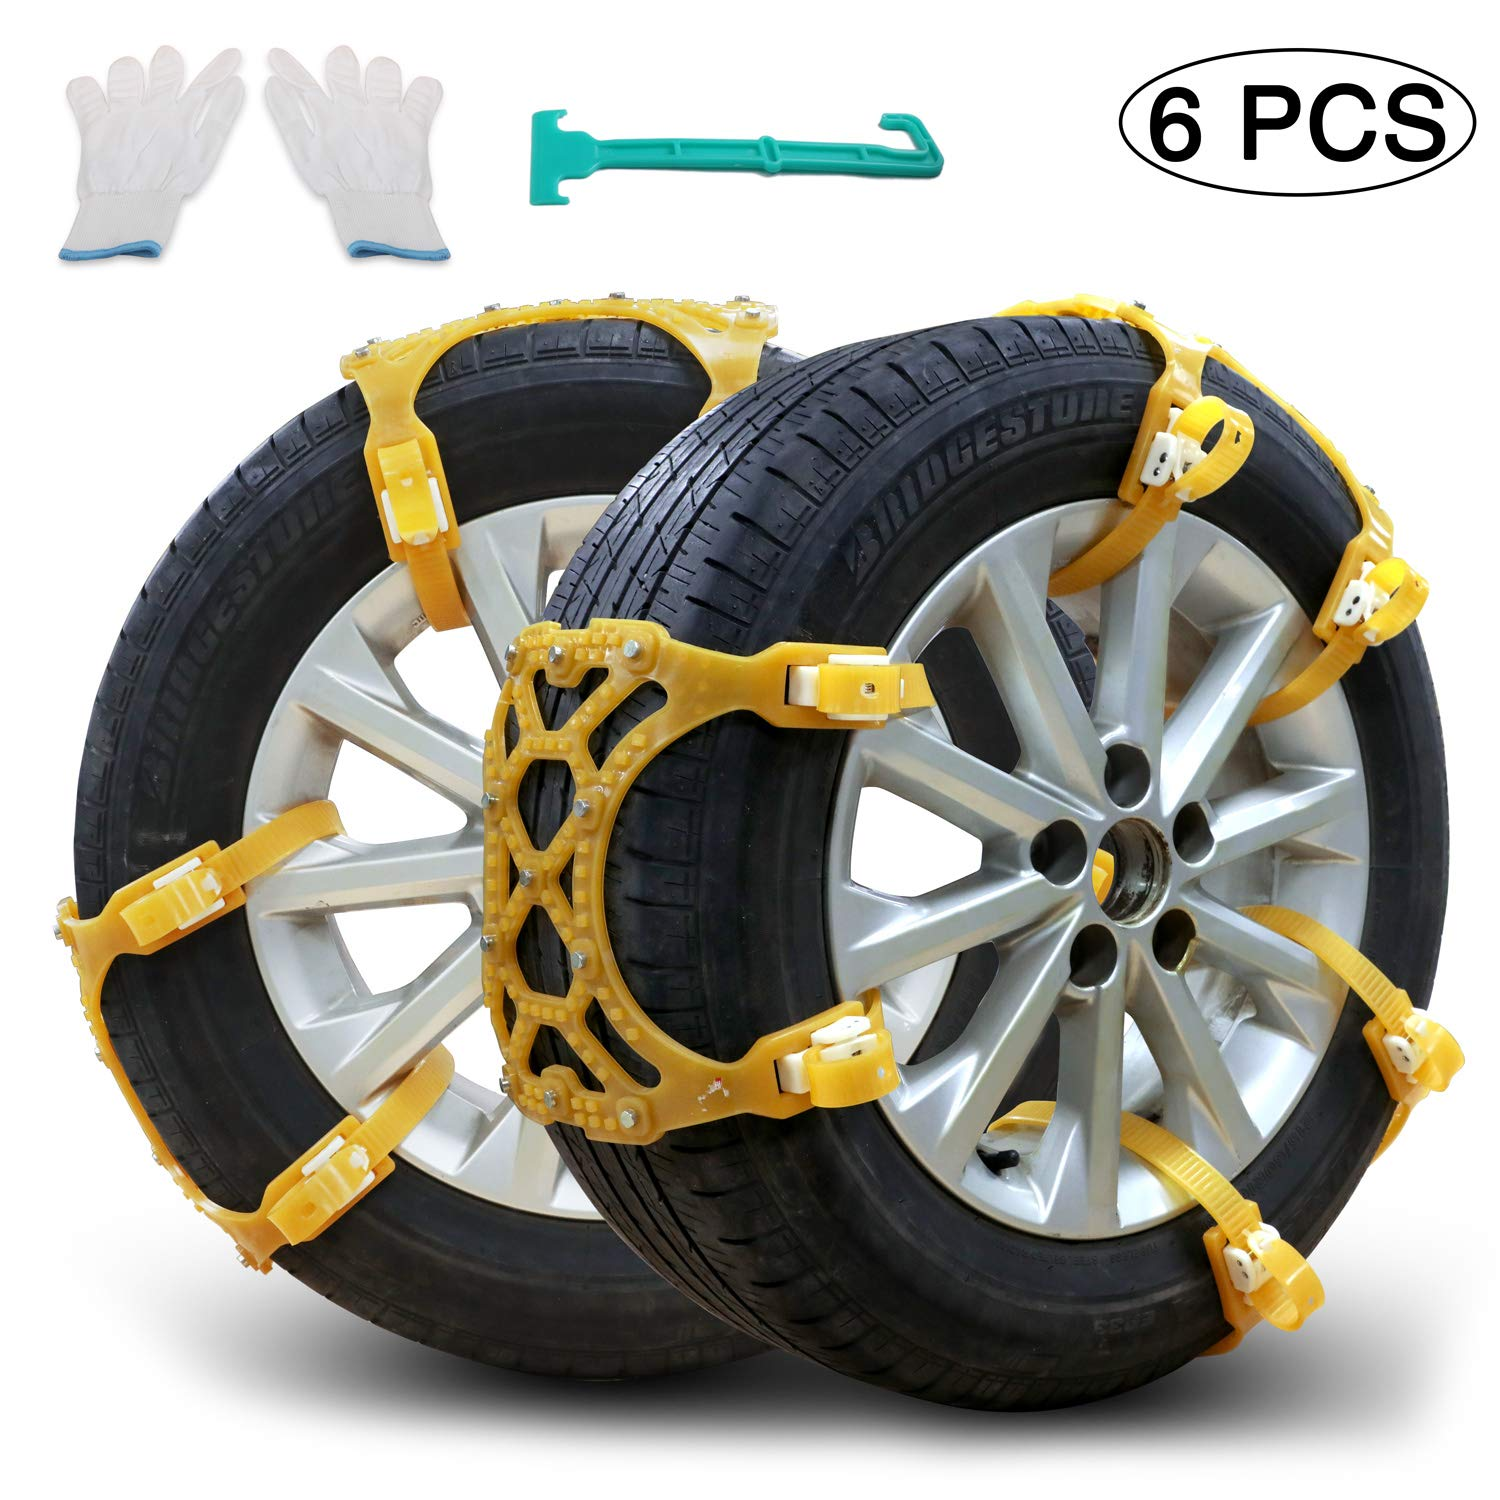 Snow Chains, Anti-skid Tire Chains Car Emergency Chains Powertiger Anti Slip Tire Snow Chain for Car and SUV (Set of 6) 5569